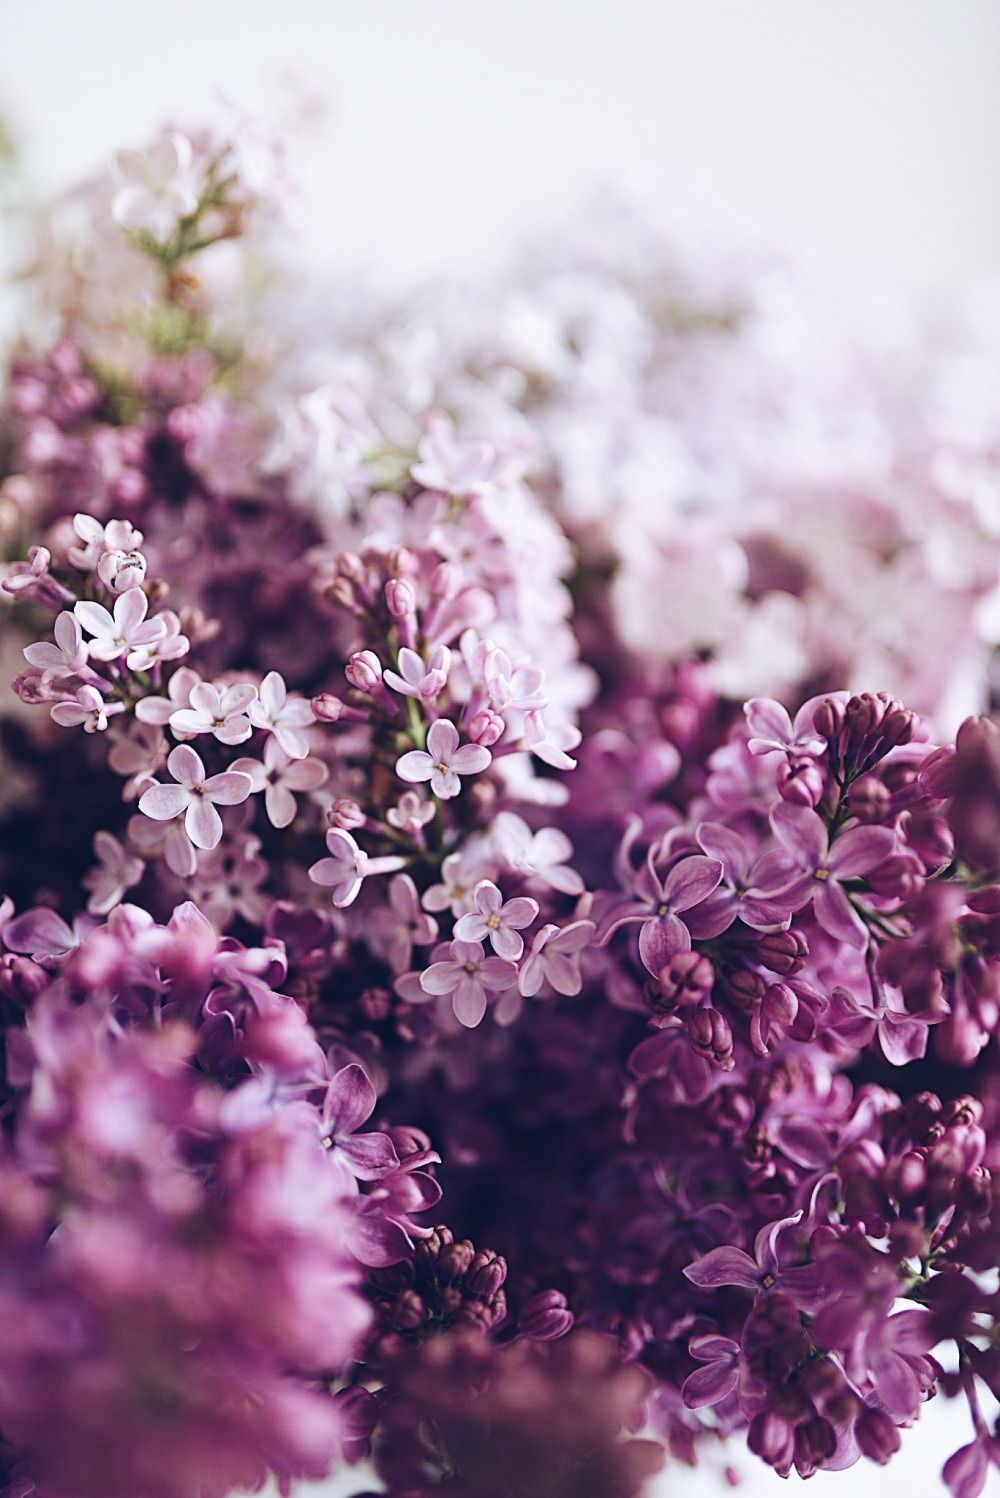 Floralls Lilac By Dominika Brudny In 2020 Flower Aesthetic Purple Flowers Wallpaper Beautiful Flowers